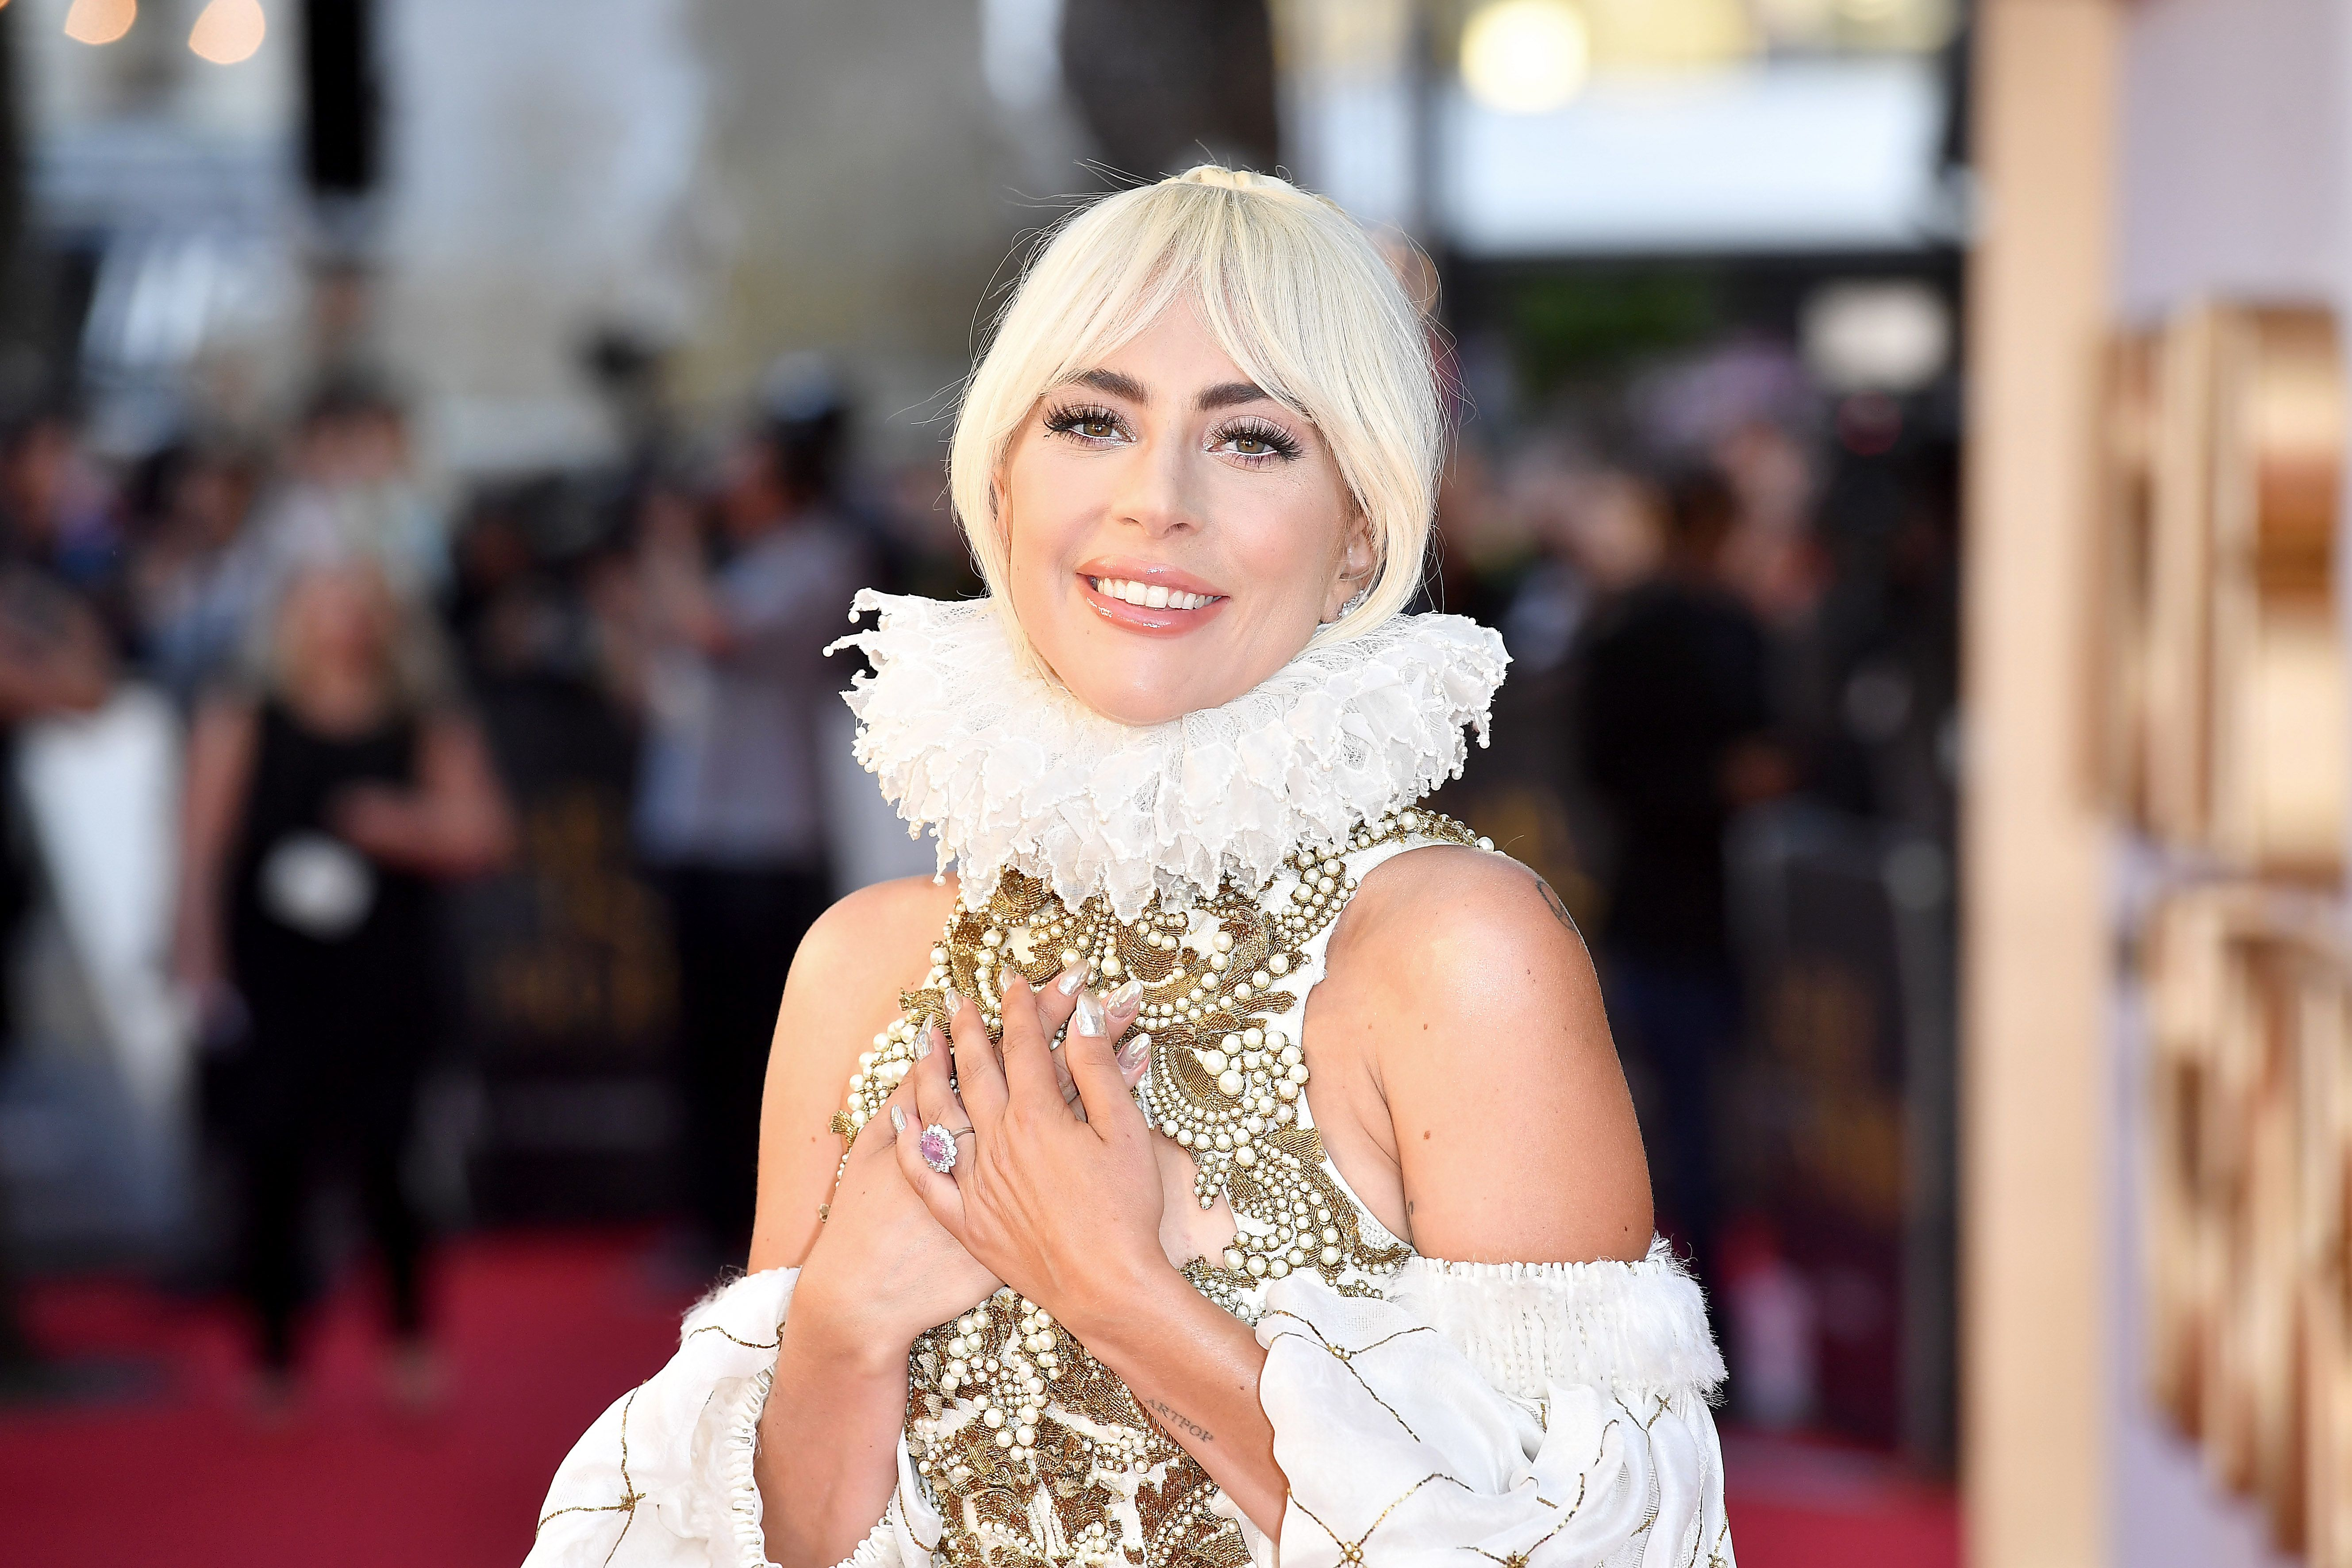 Lady Gaga Says She Wants Marriage And Is 'Very Excited To Have Kids' Someday